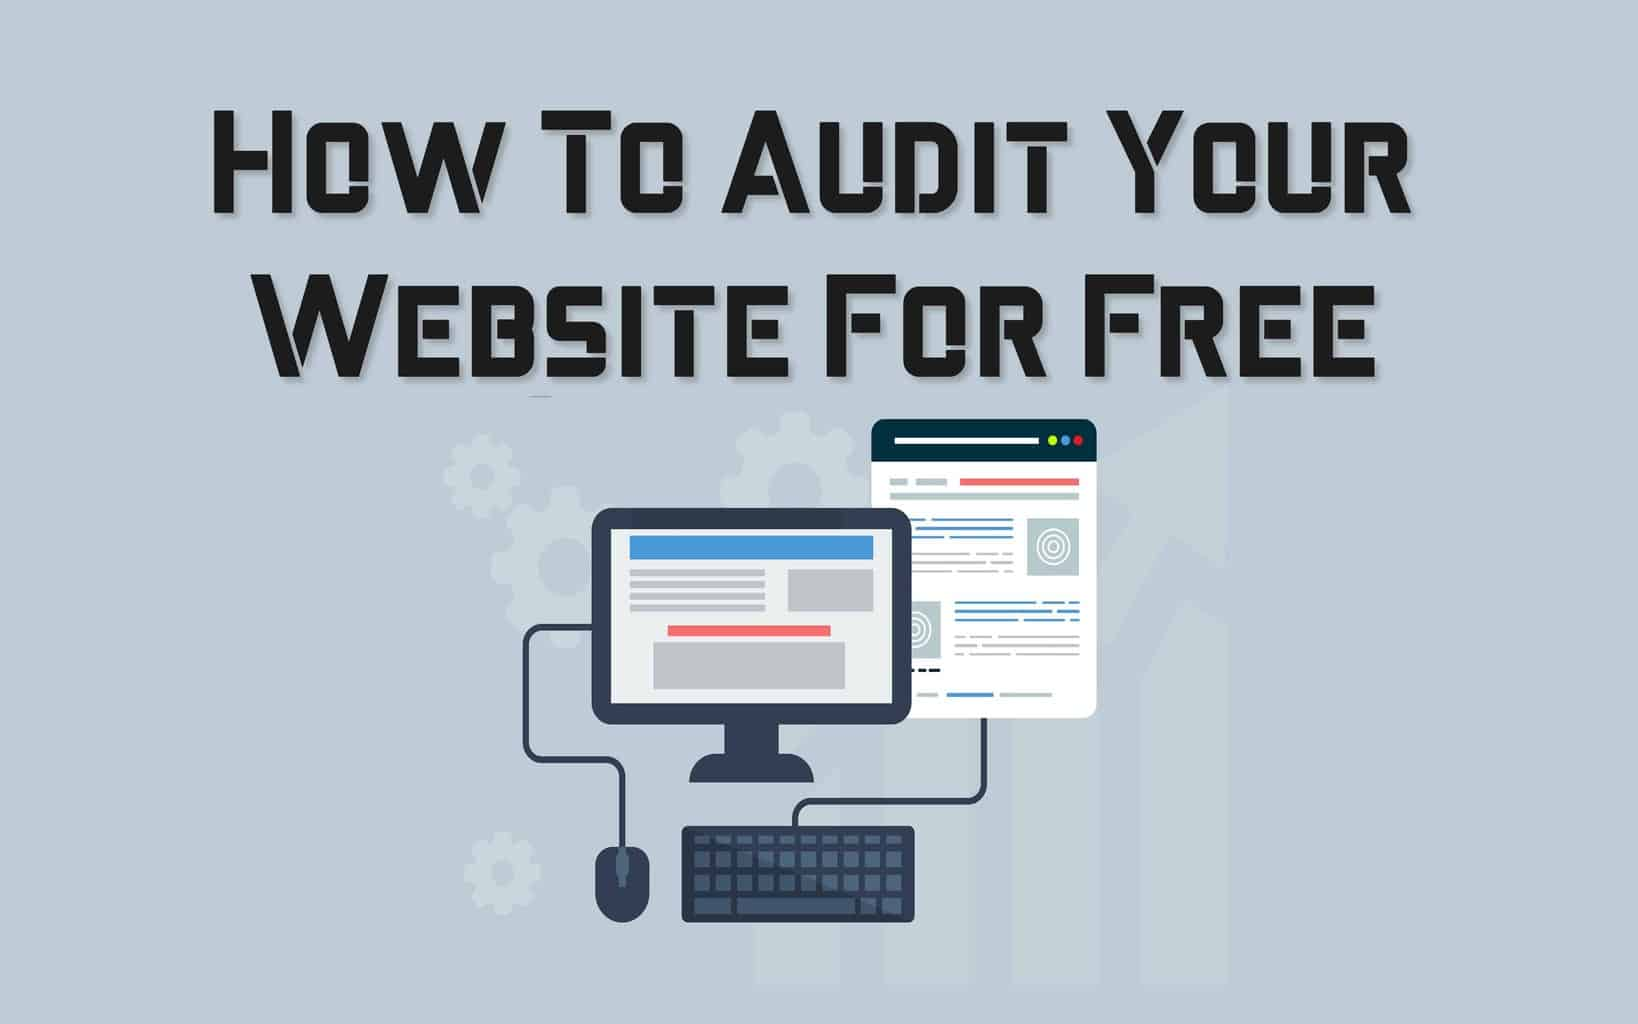 how to audit your website for free heading, with an illustration of a computer and a website.